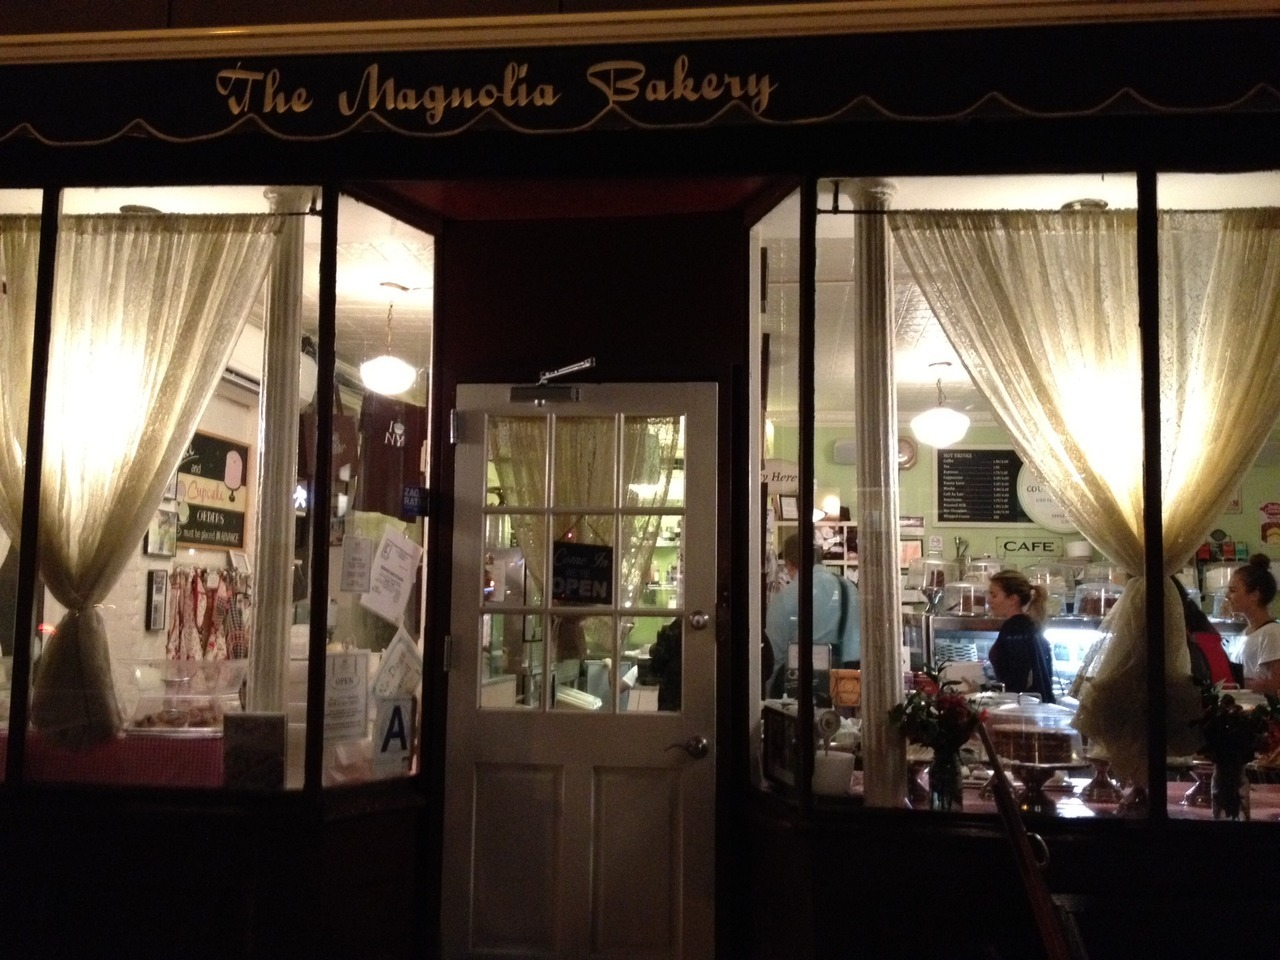 Be still our beating hearts! A late night trip to the Magnolia Bakery: